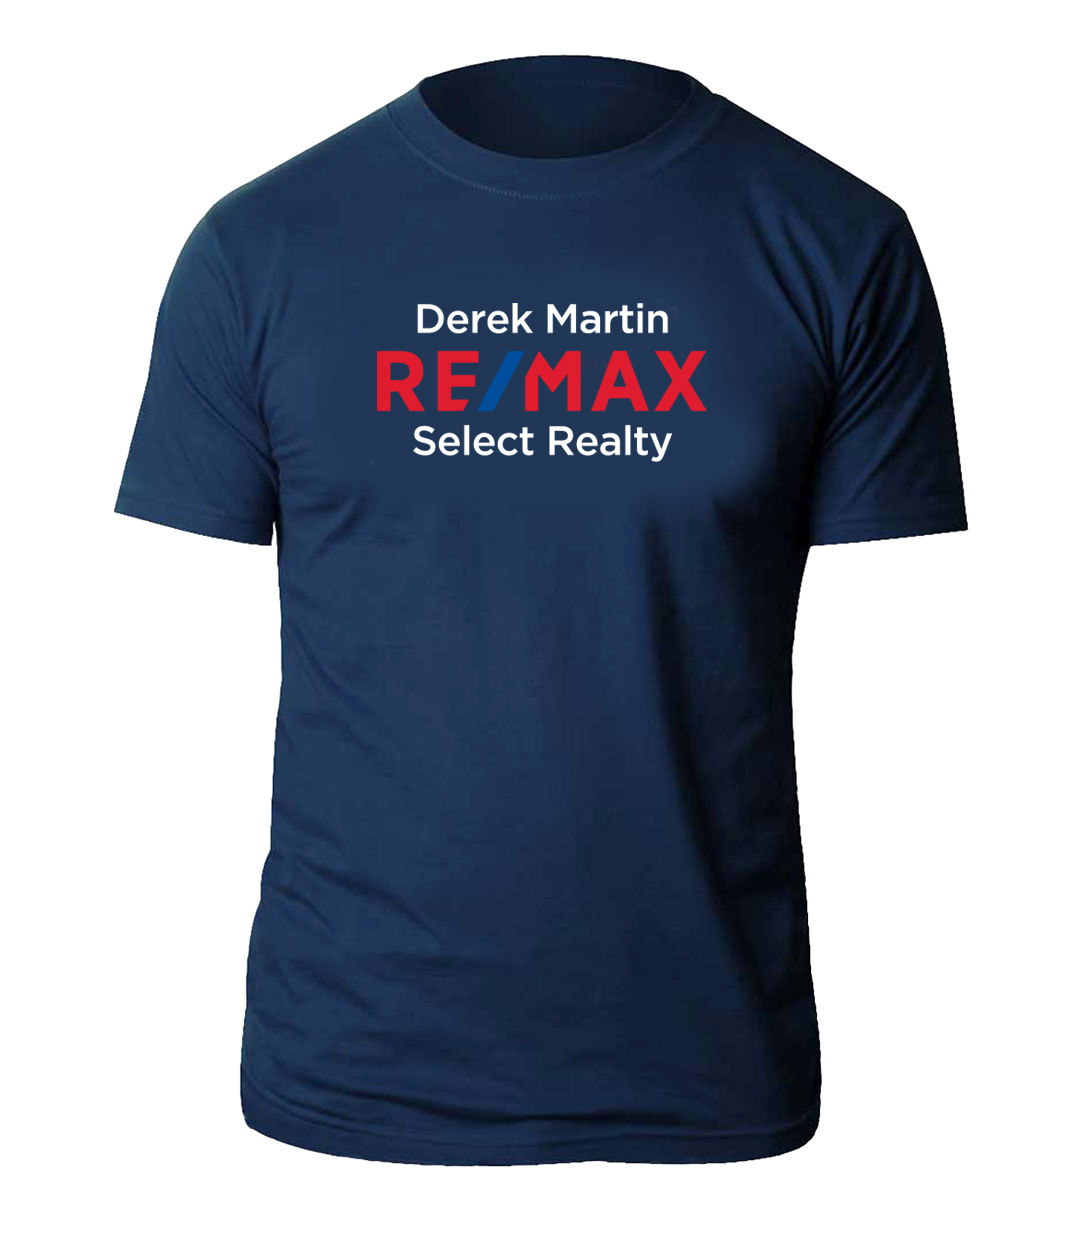 REMAX Tshirt (Navy) - Personalized